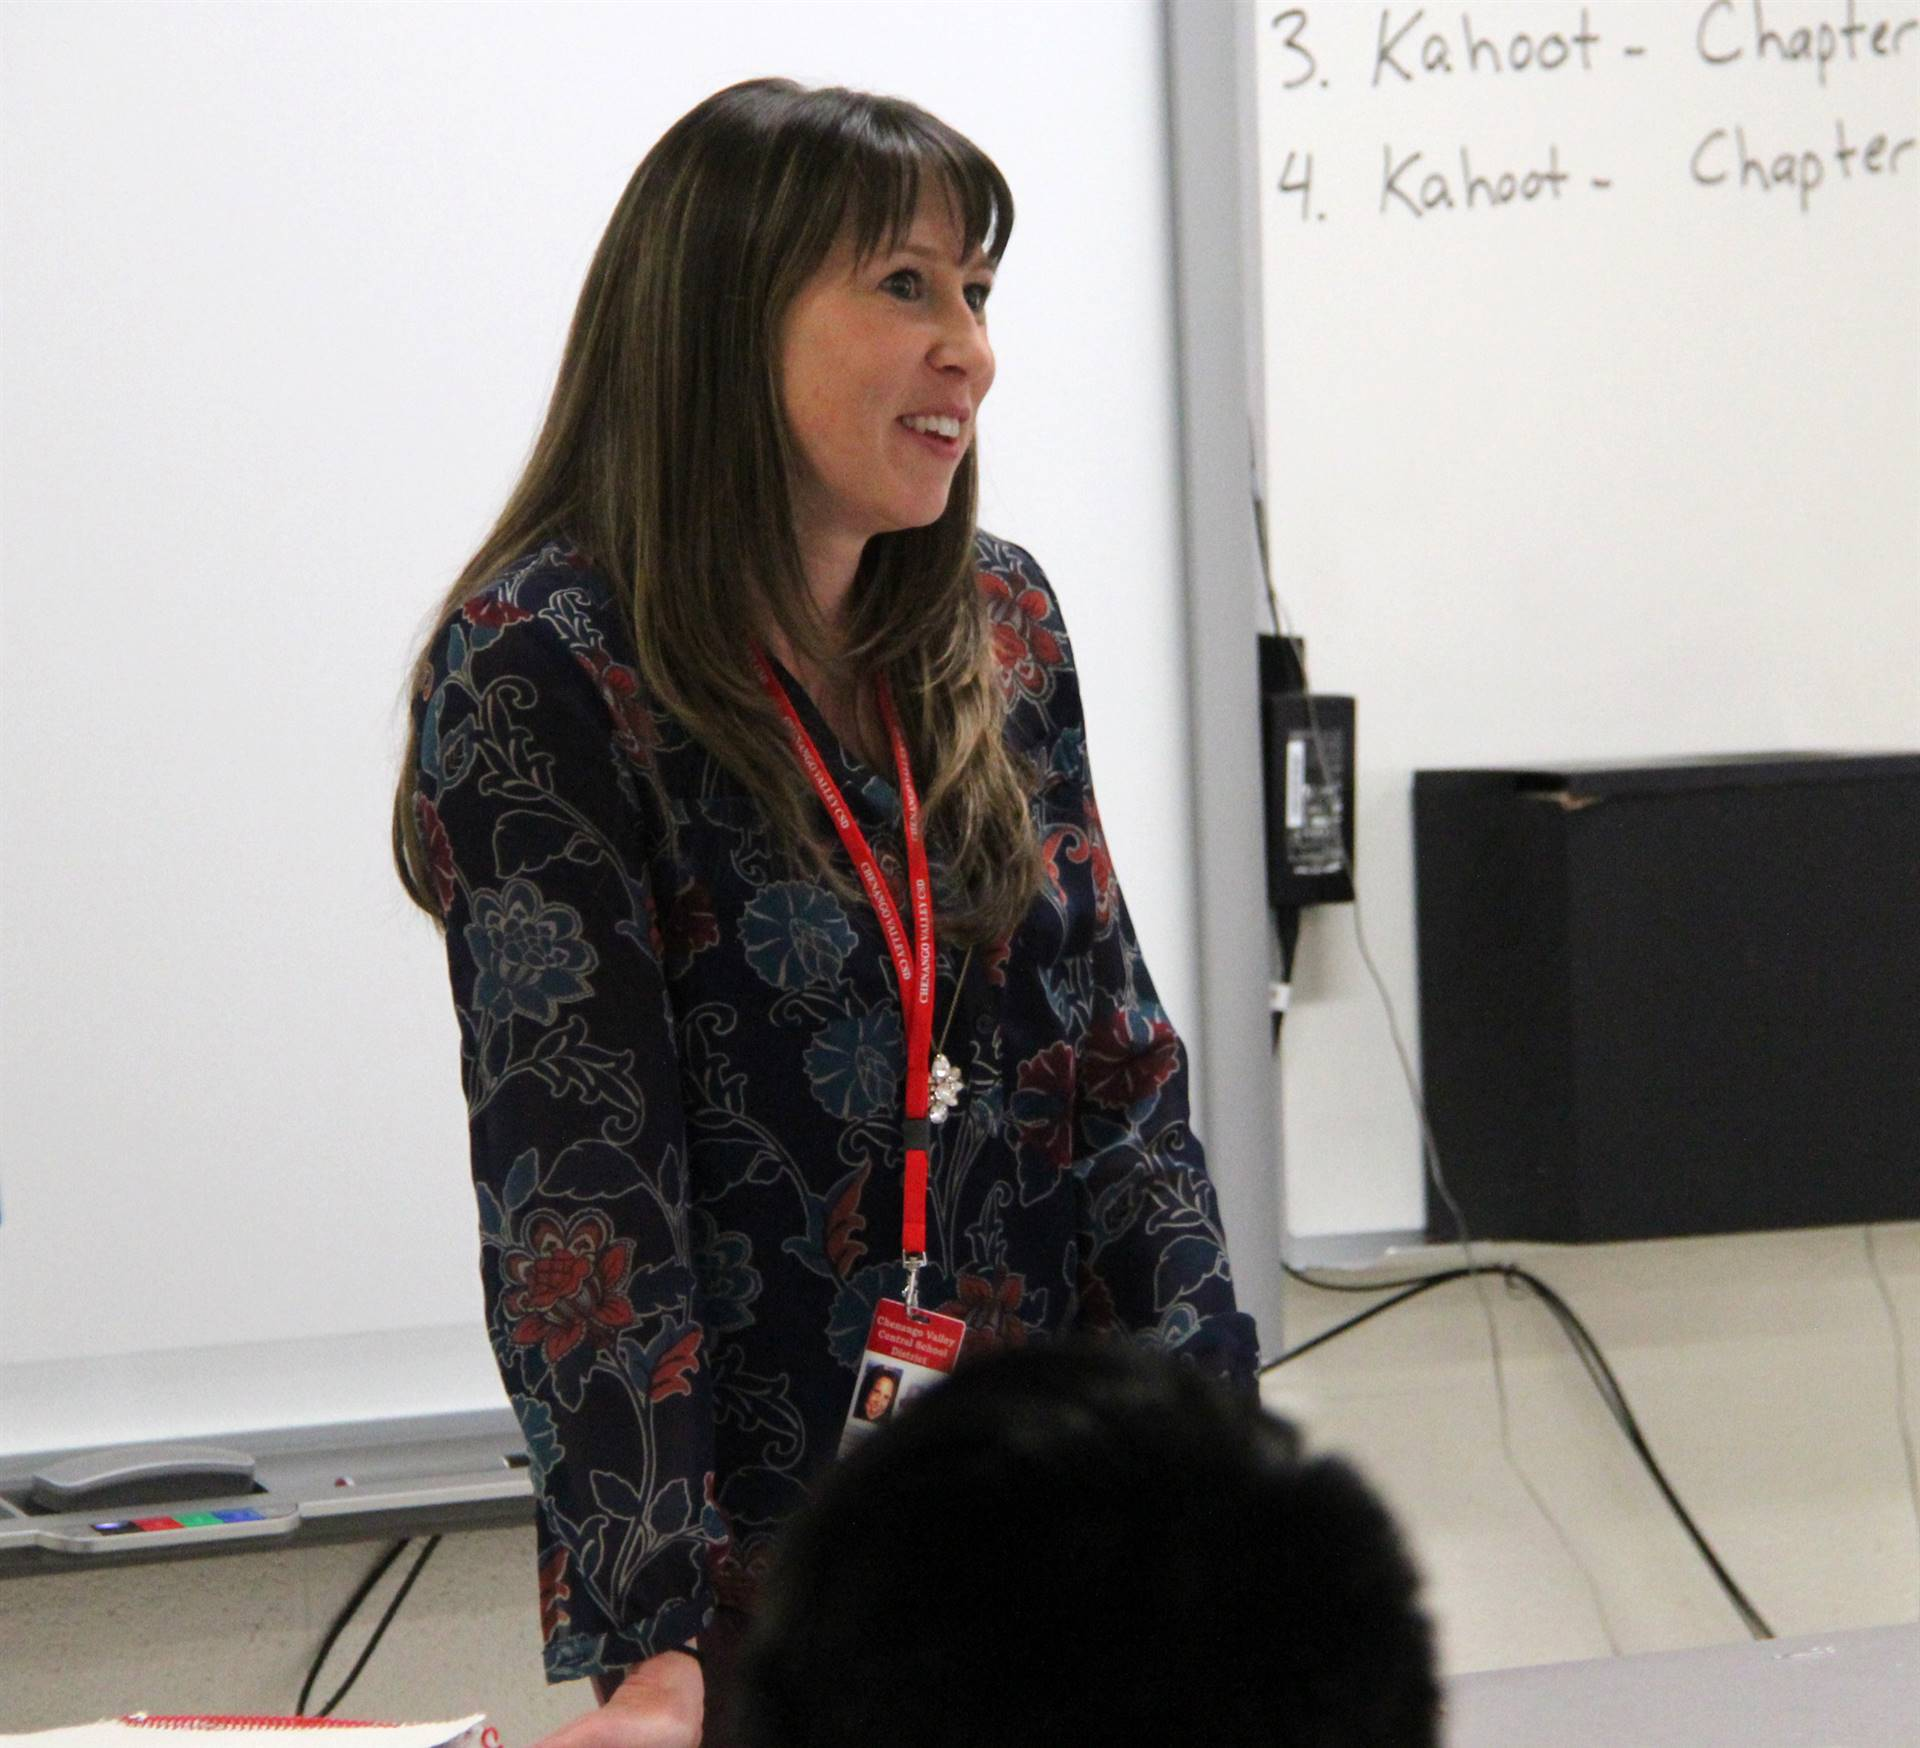 honoree in classroom